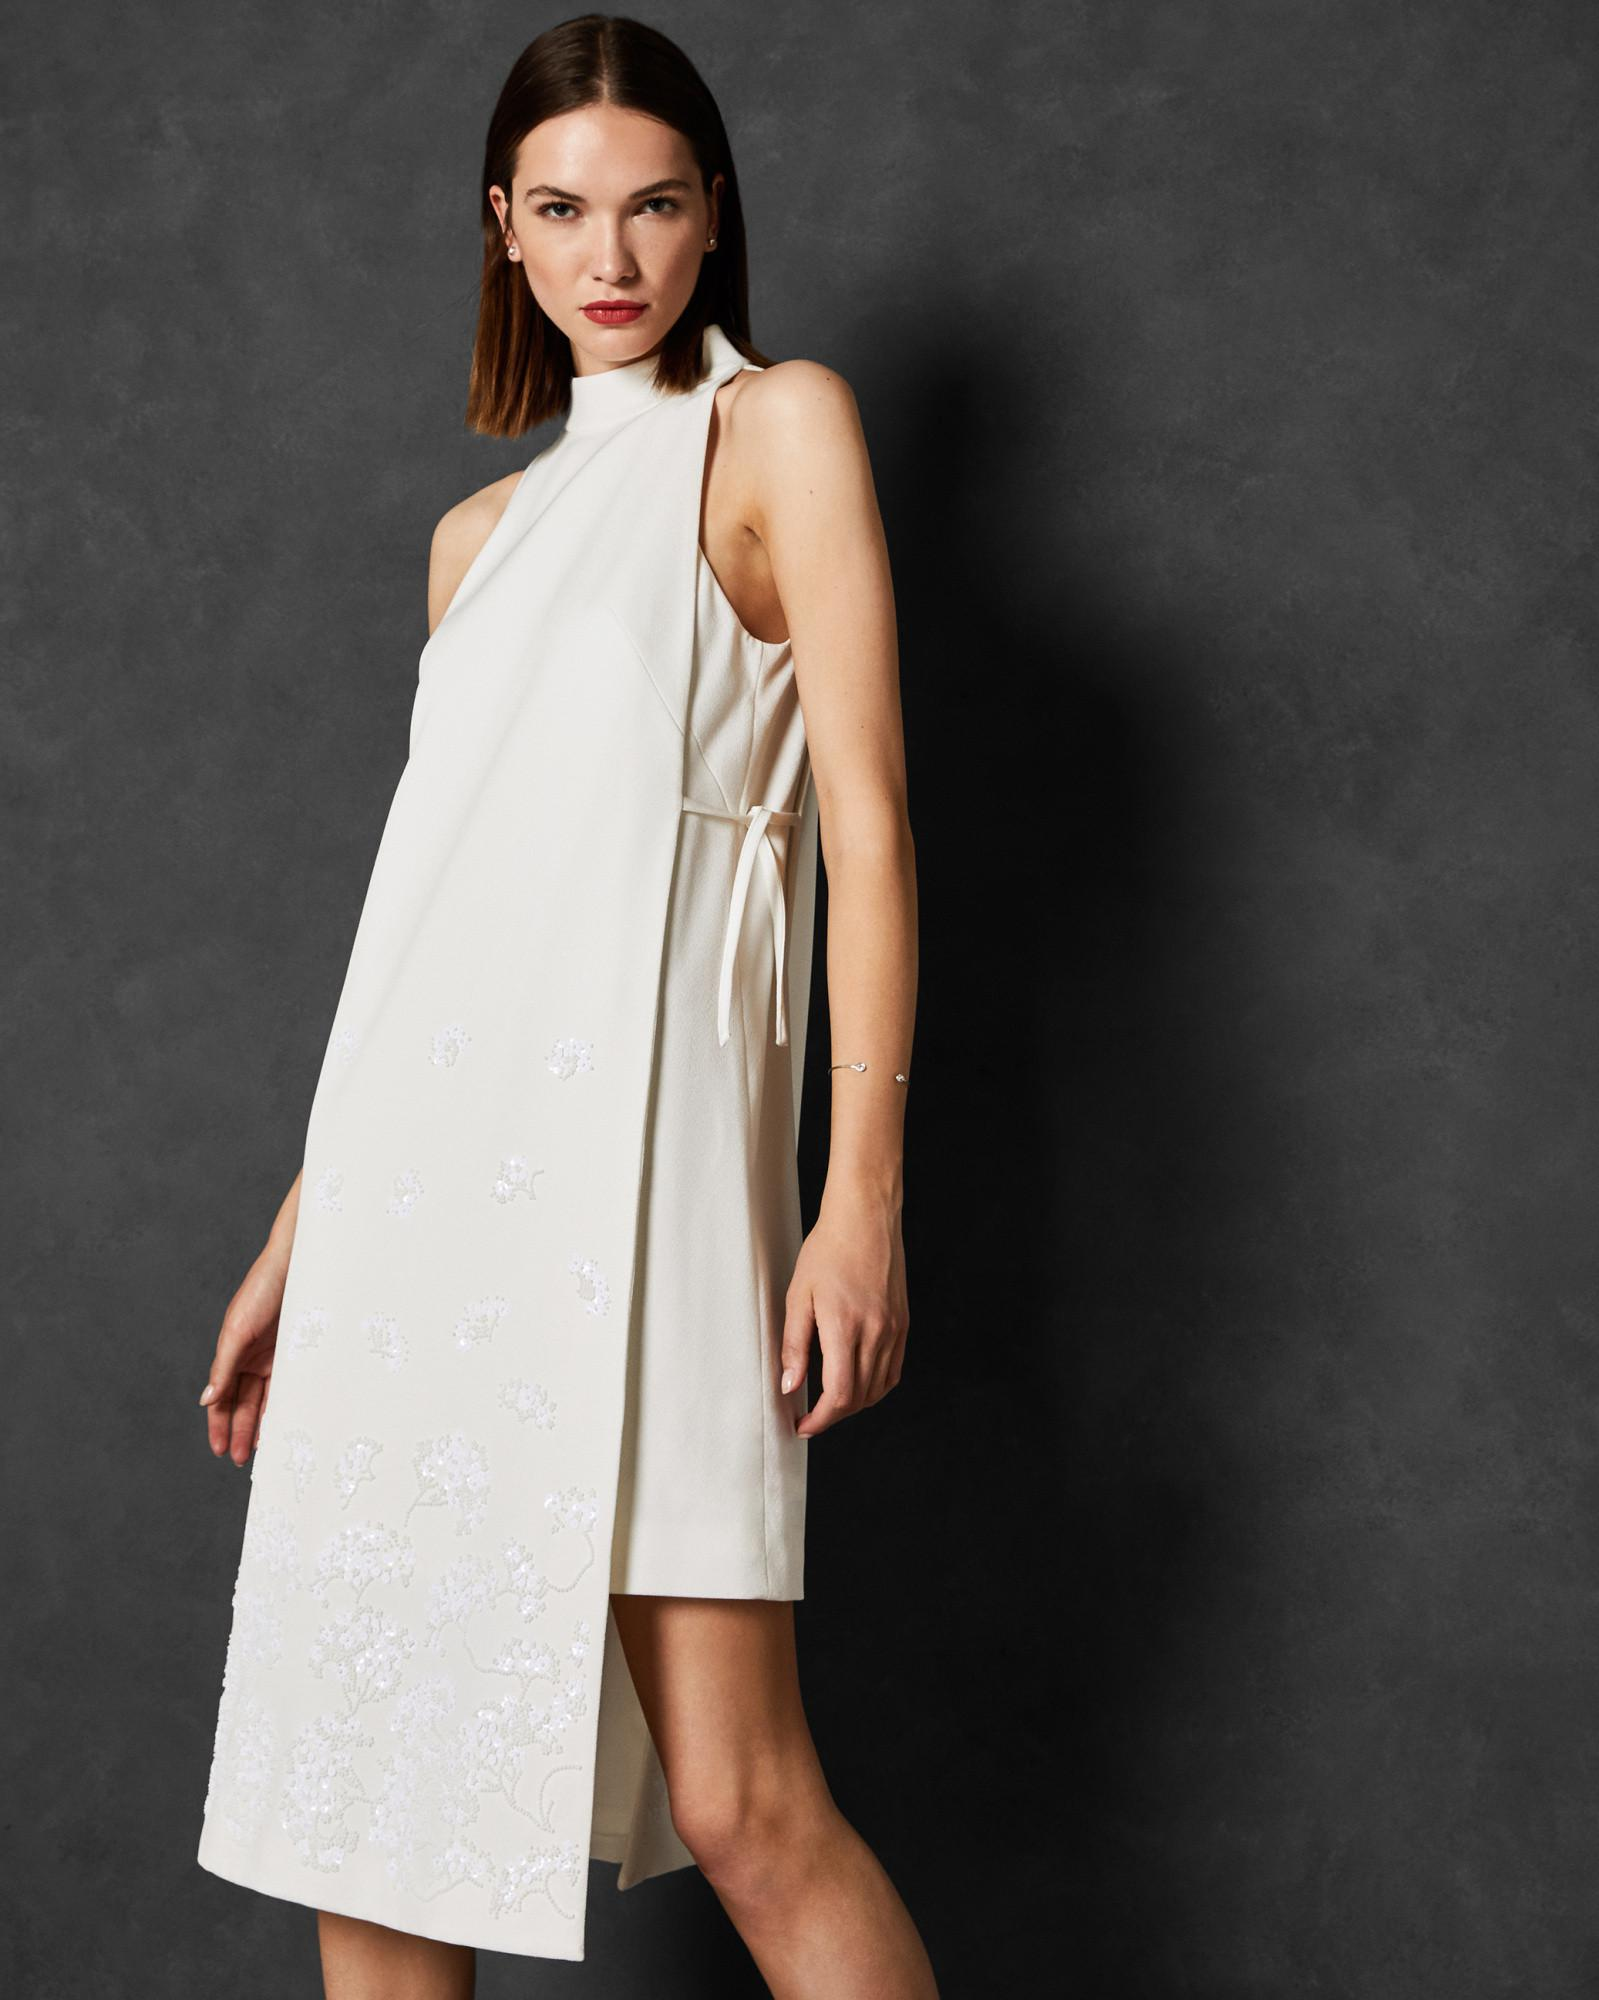 Ted Baker Double Layer Embellished Dress in White - Lyst ad00350ab